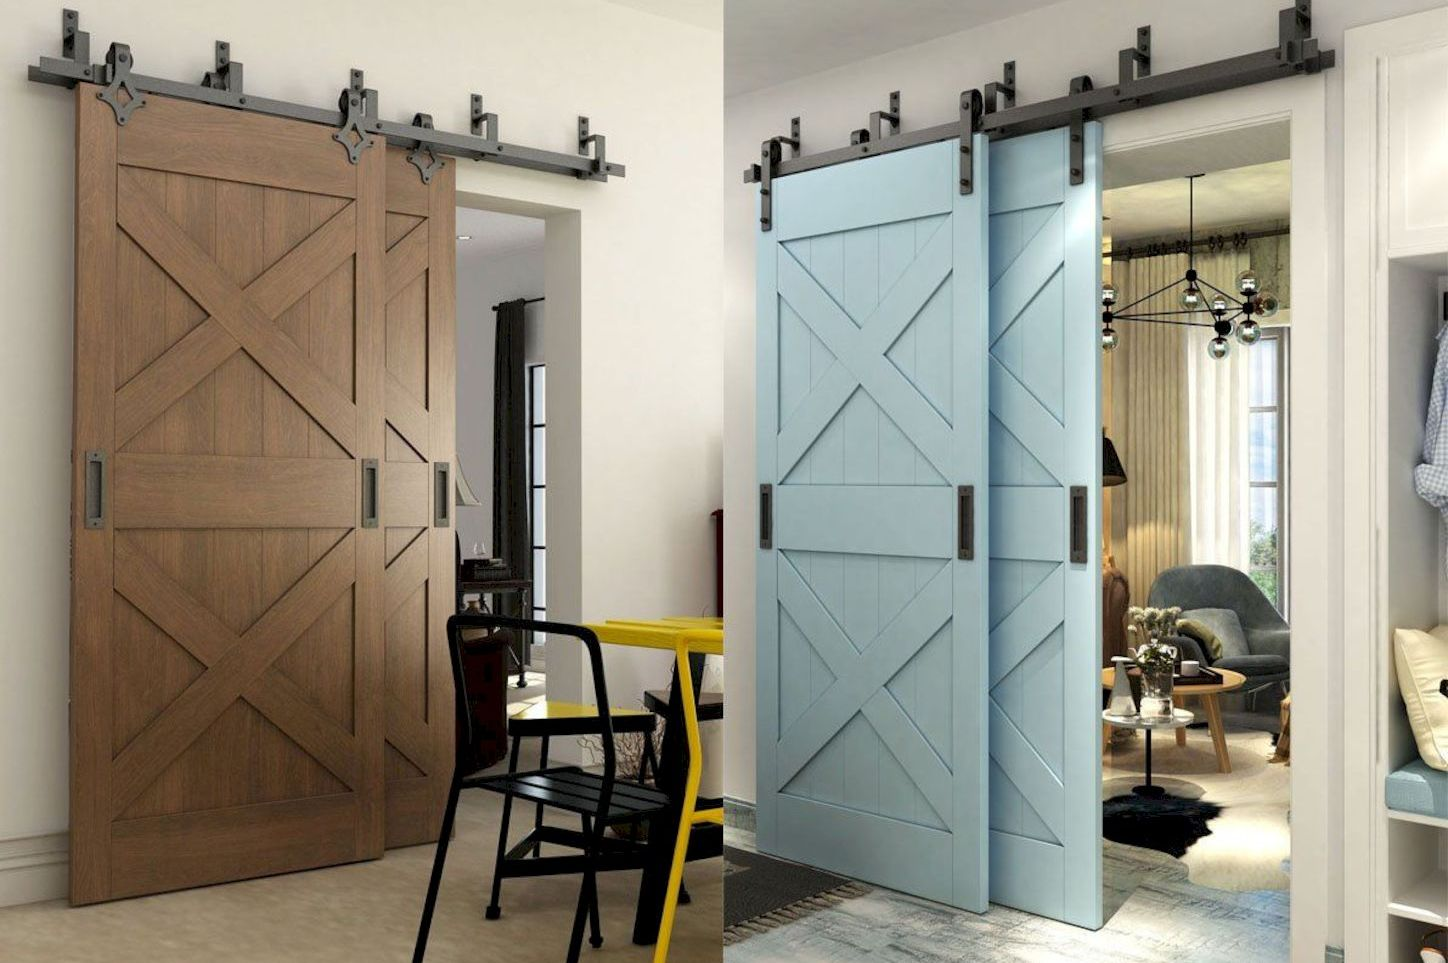 Barn style sliding doors designed to upgrade a rustic look in your farmhouse and rustic home style Image 20